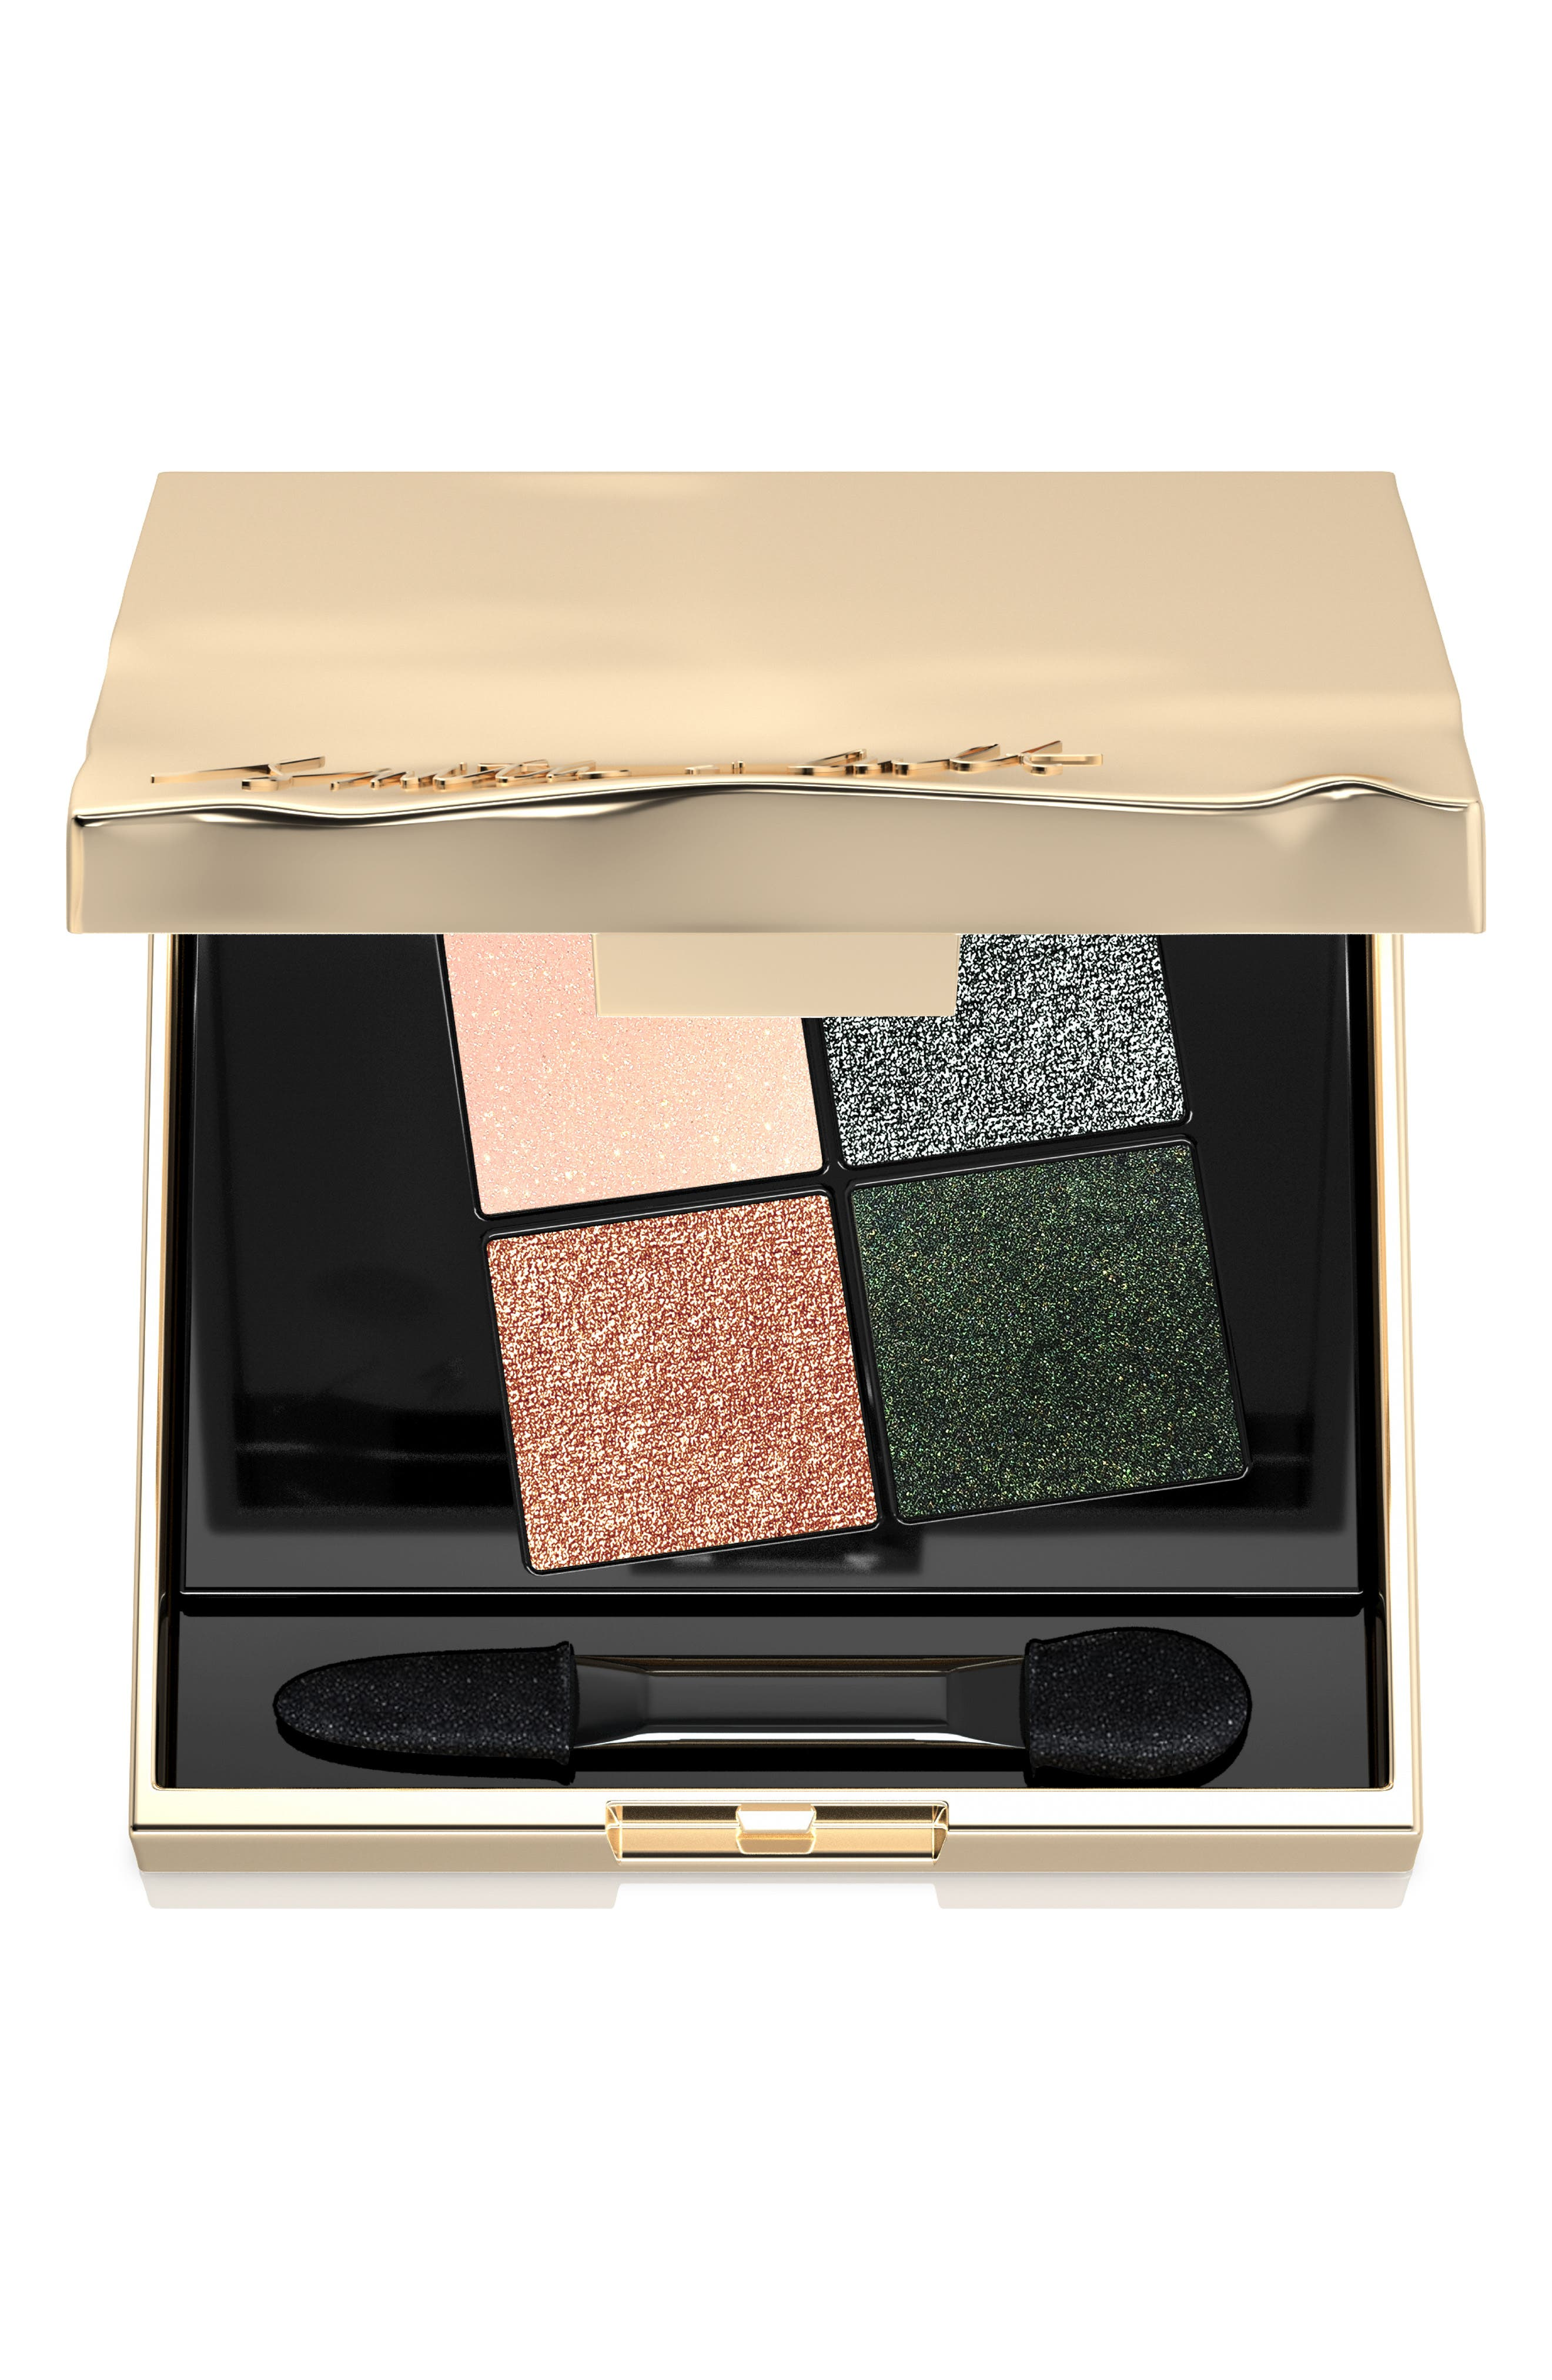 SMITH & CULT BOOK OF EYES EYESHADOW PALETTE - SONG FOR FIELDS